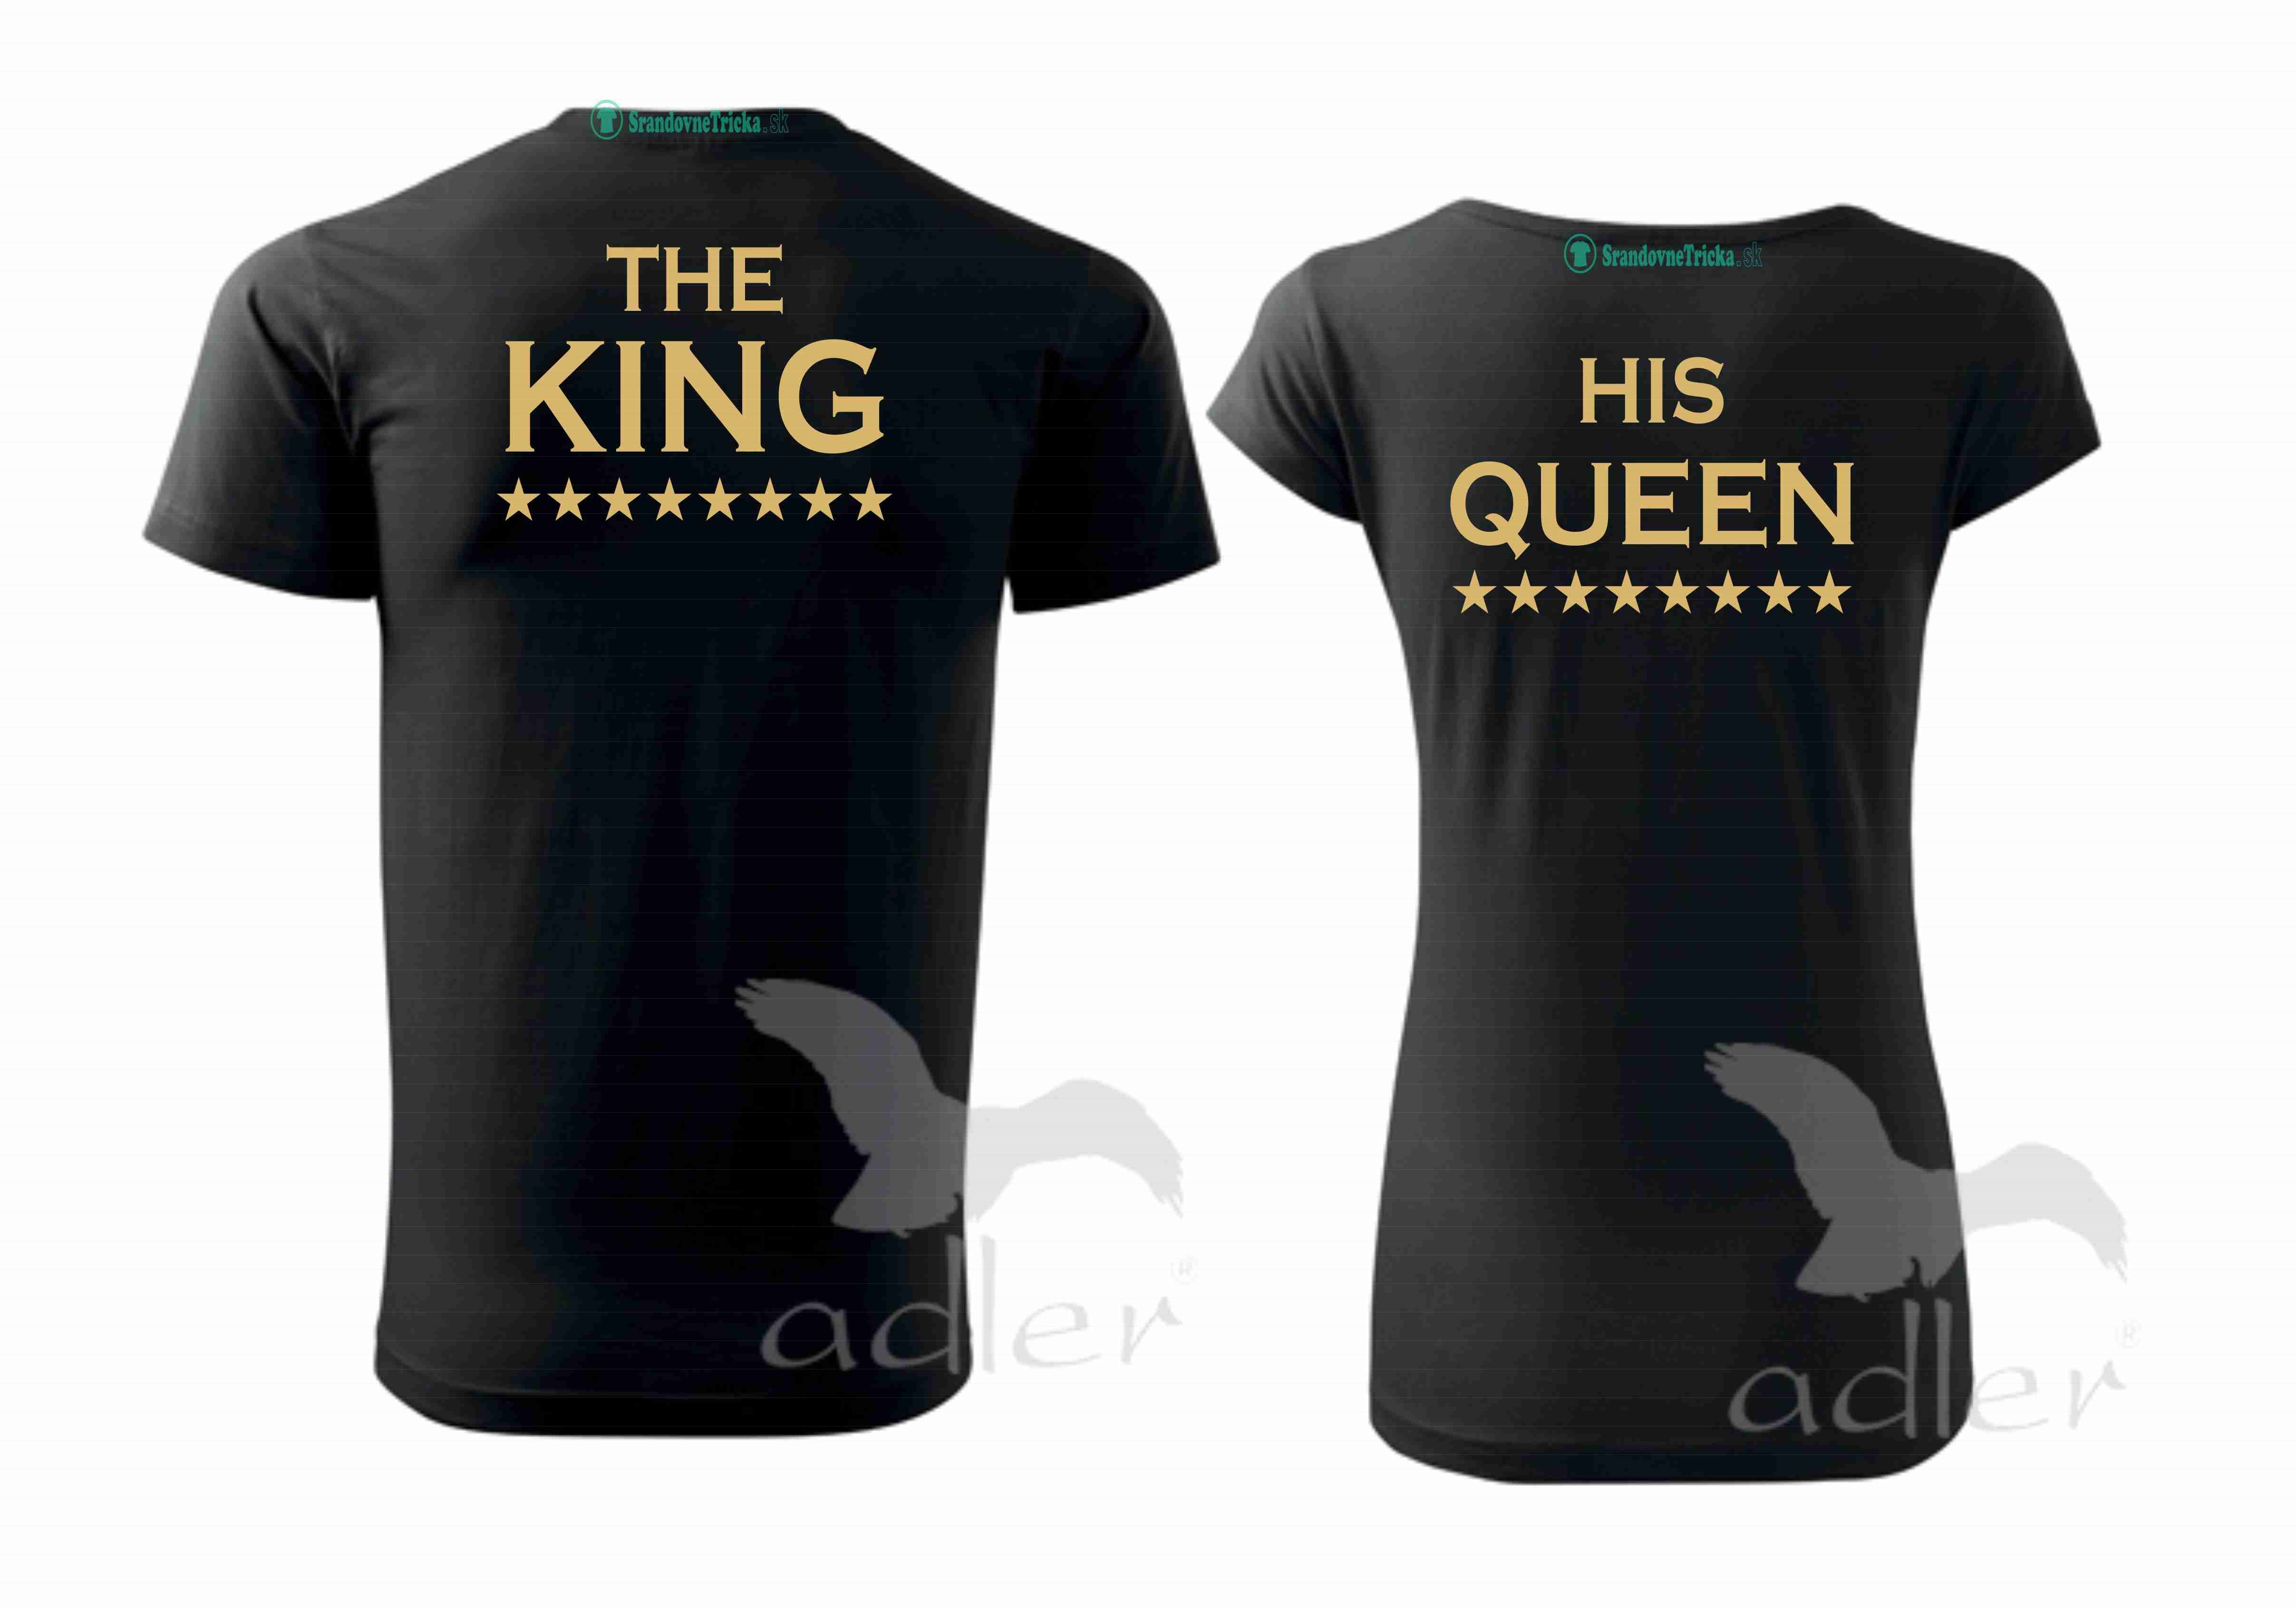 The King / His Queen